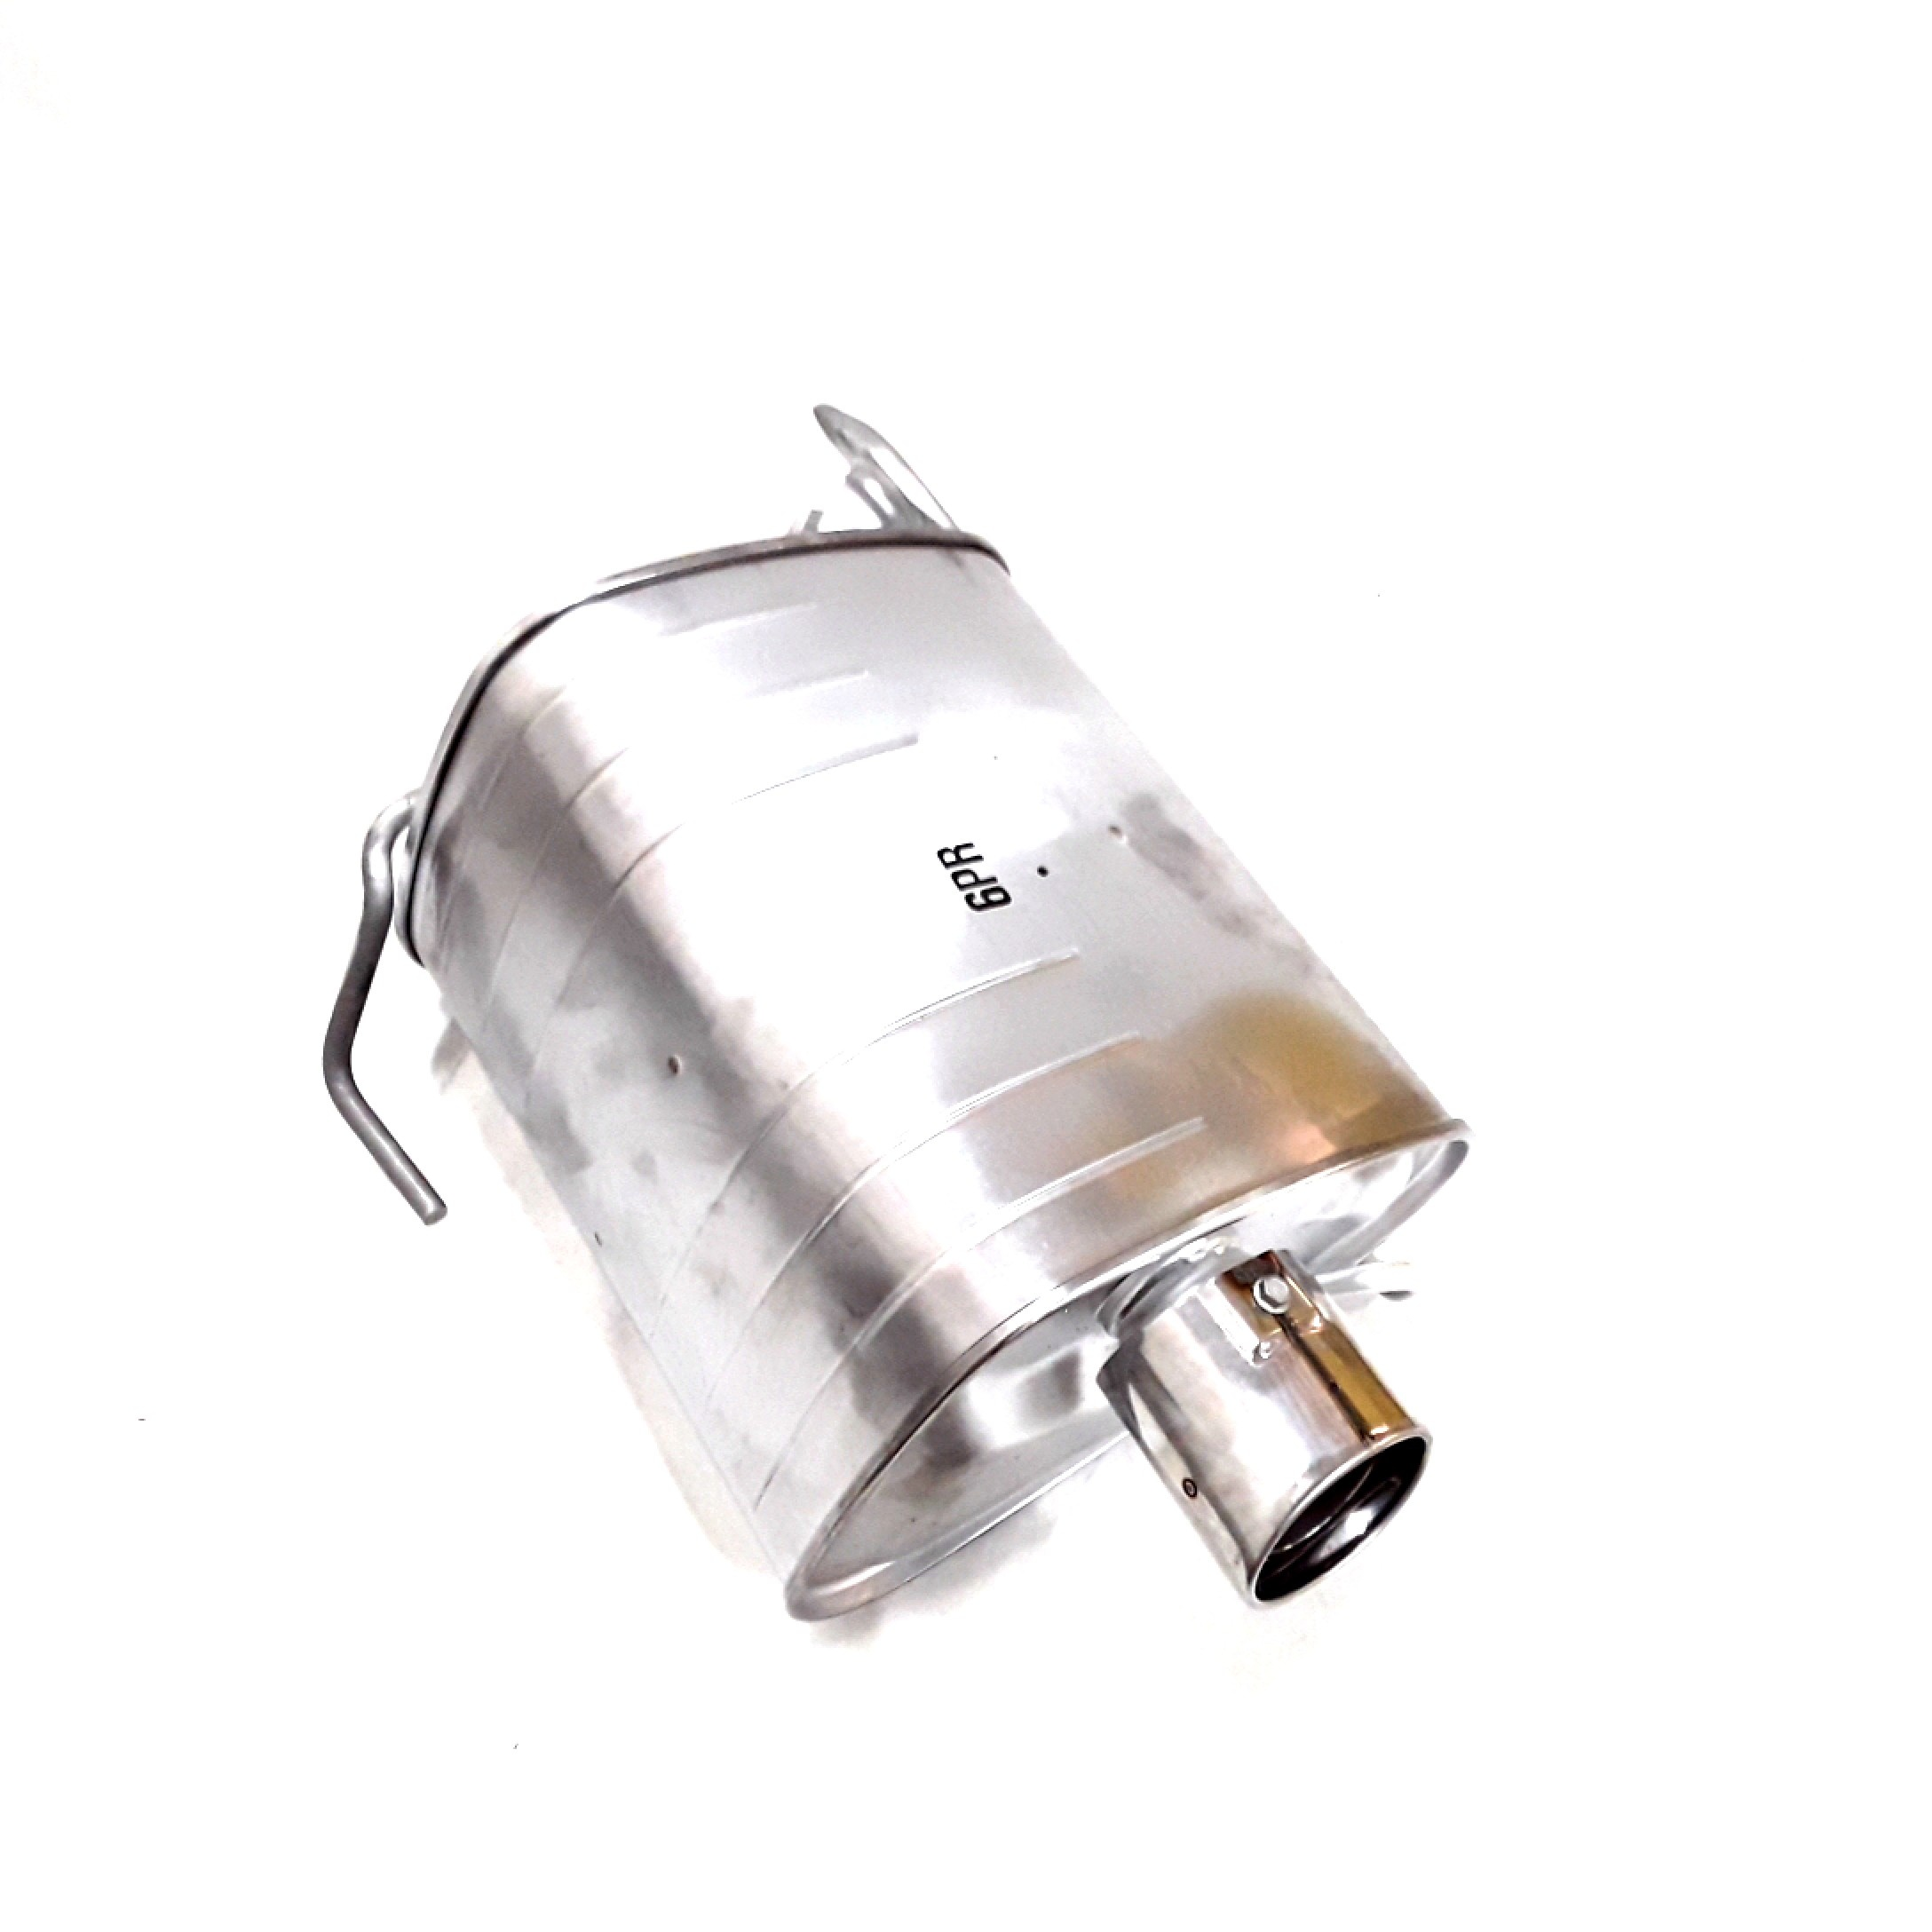 2015 Subaru Forester Muffler Assembly Right Exhaust